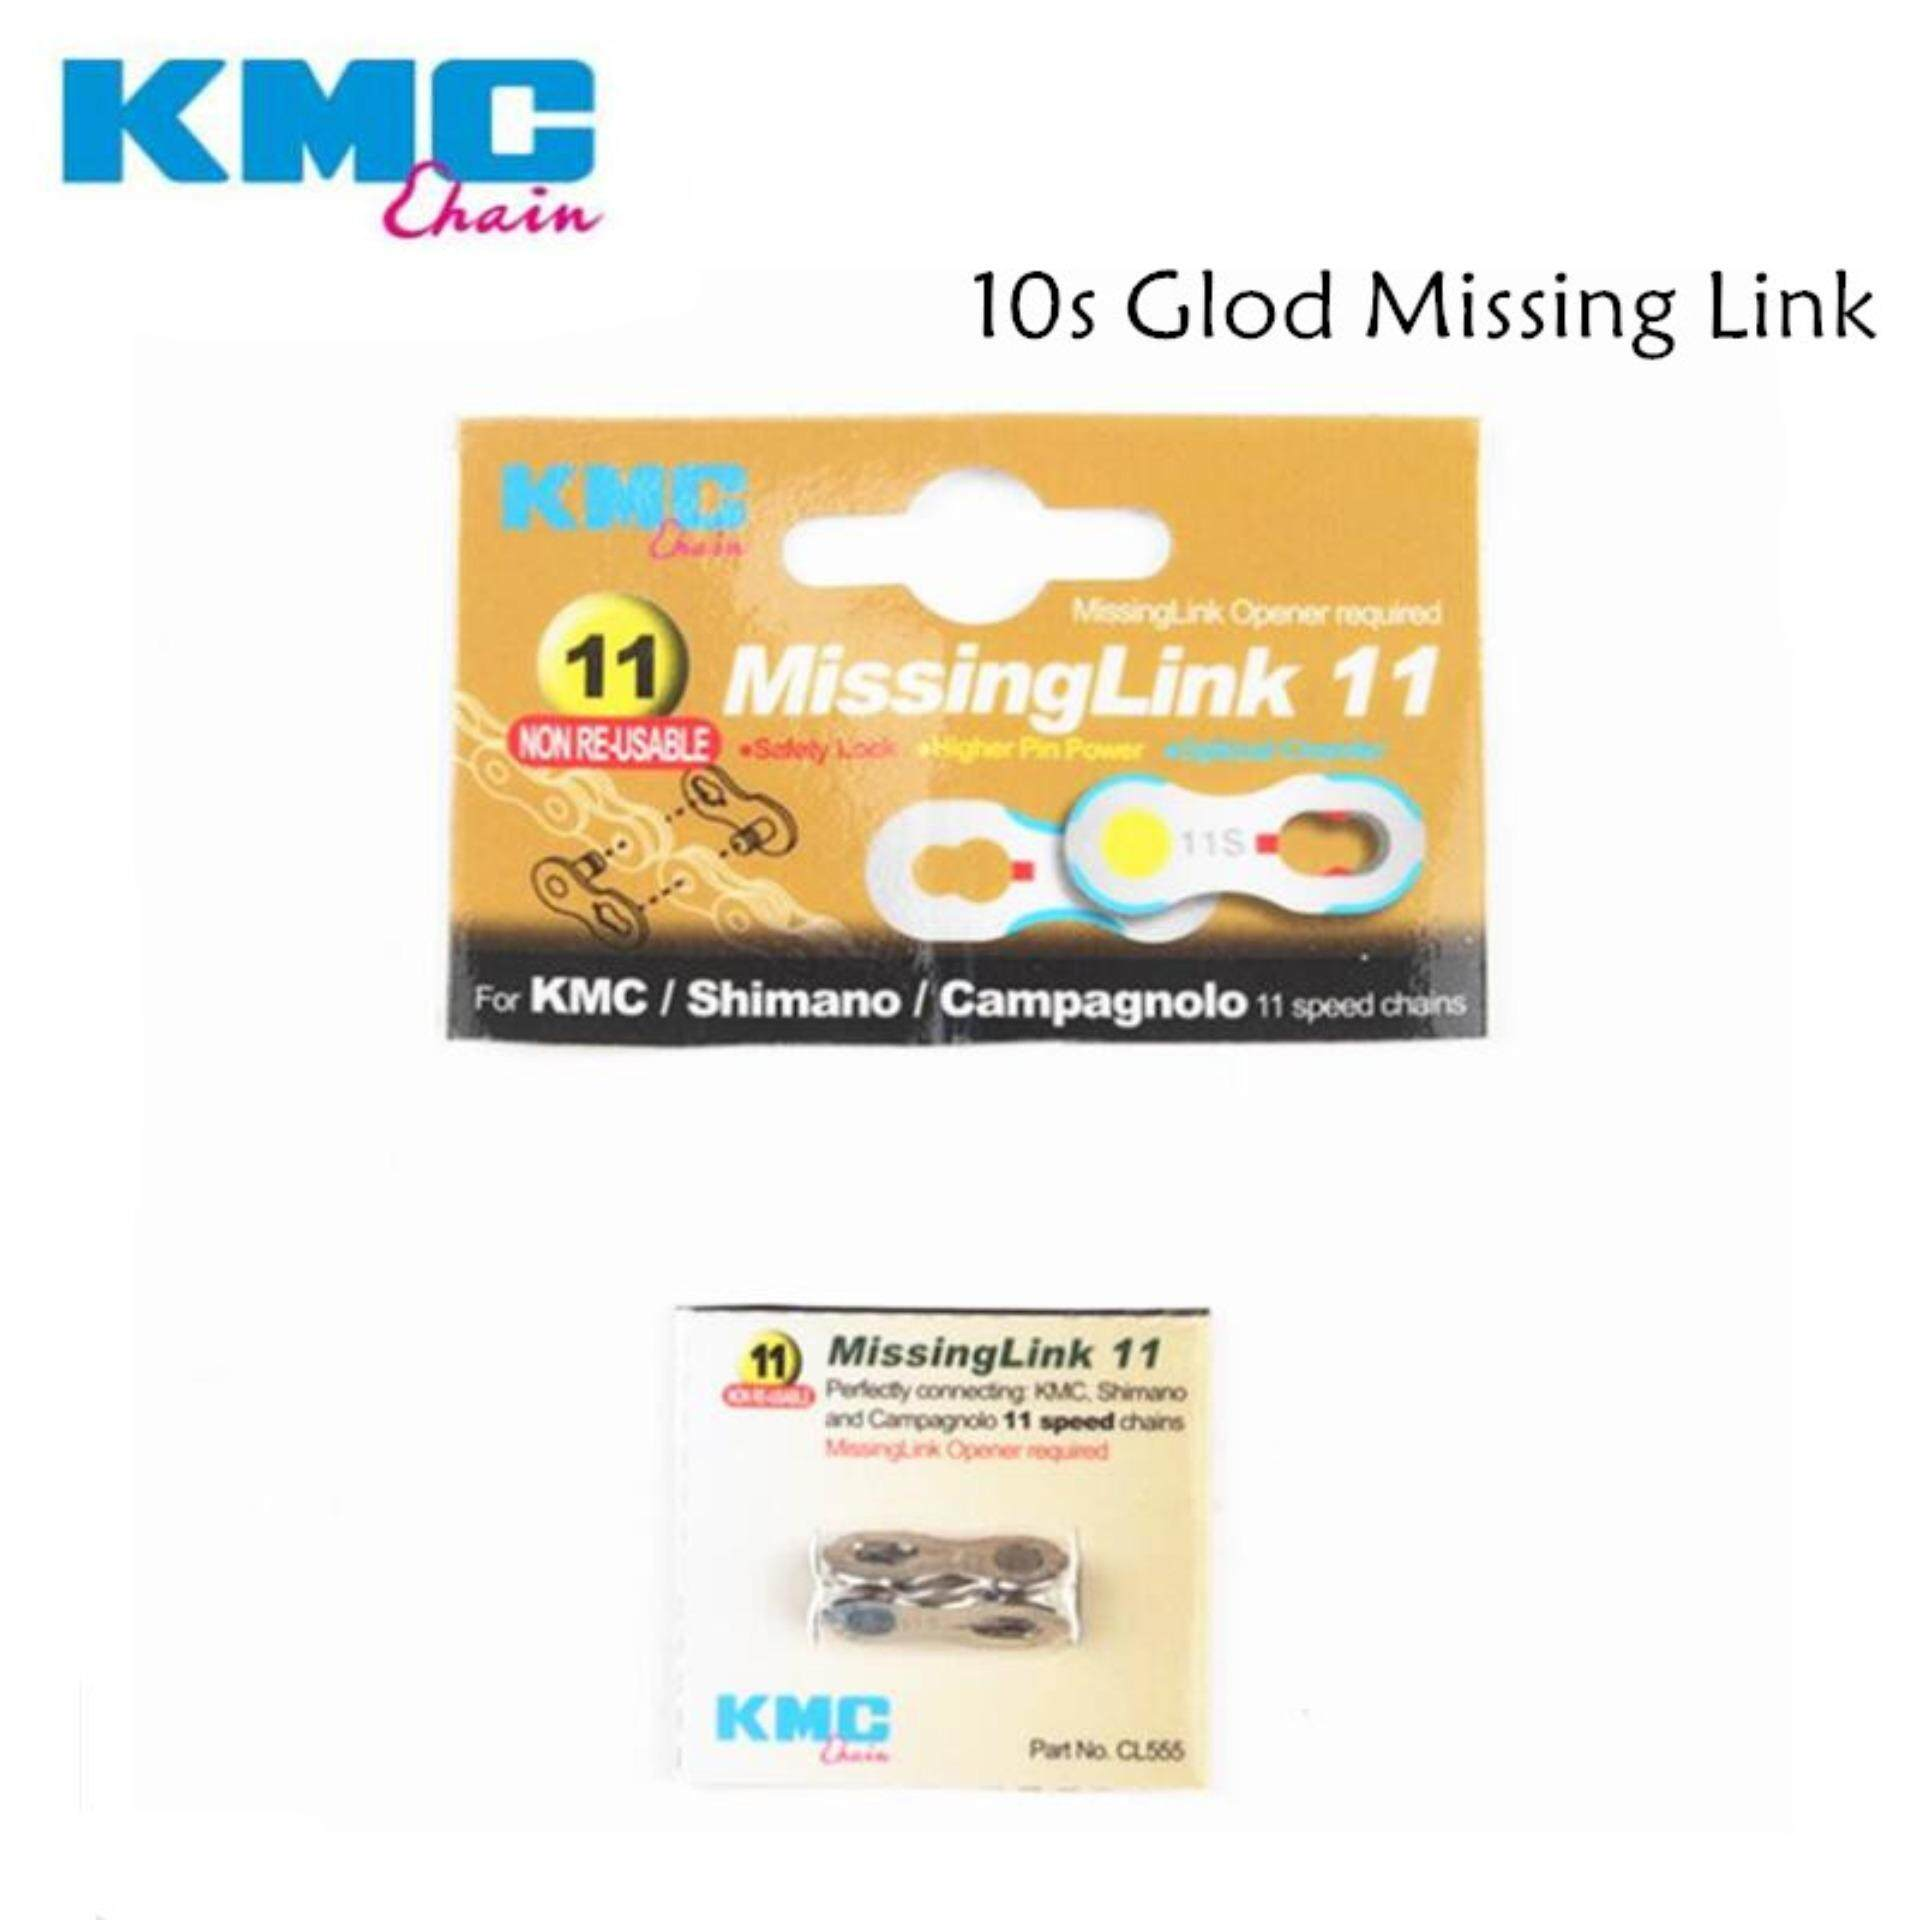 2 Pairs KMC CL566R Missing Link Chain Connetor for 9 Speed Re-Usable Silver